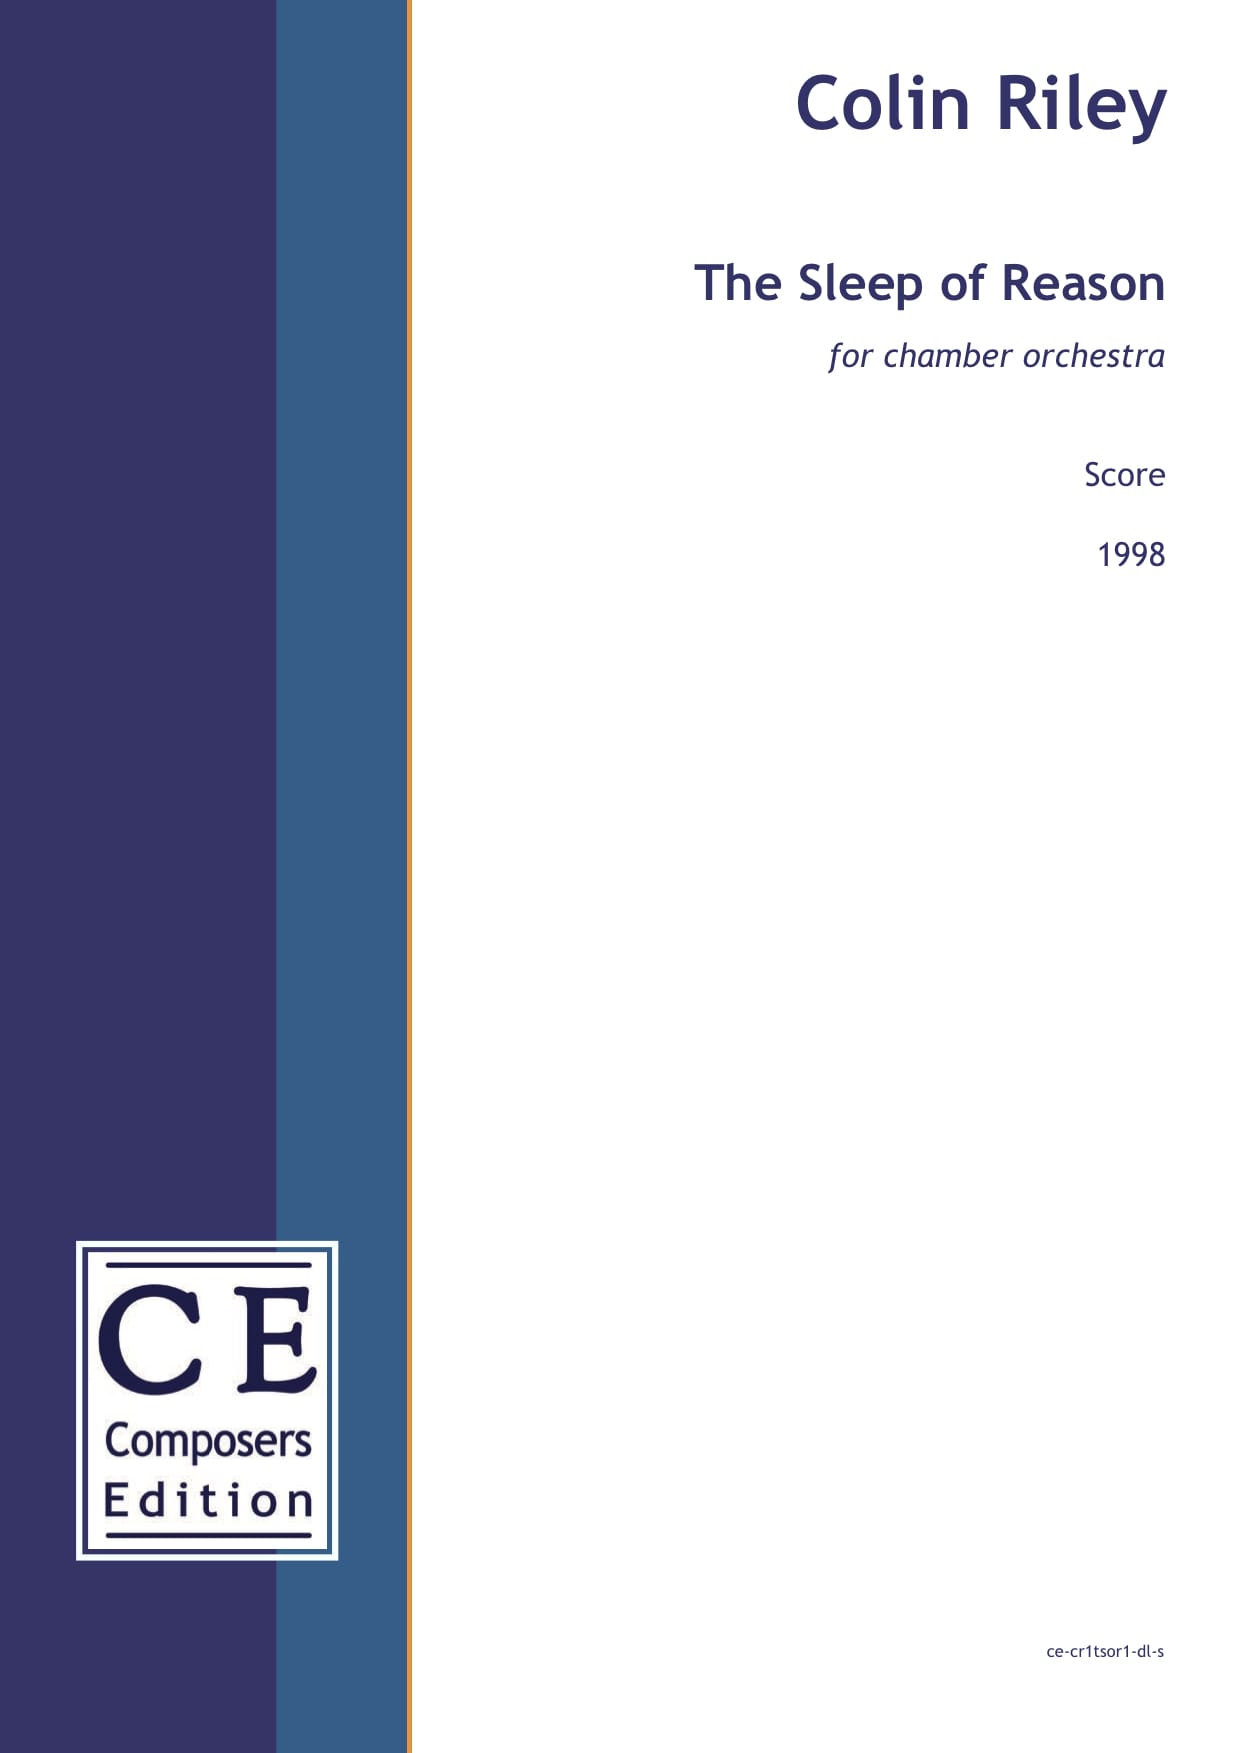 Colin Riley: The Sleep of Reason for chamber orchestra